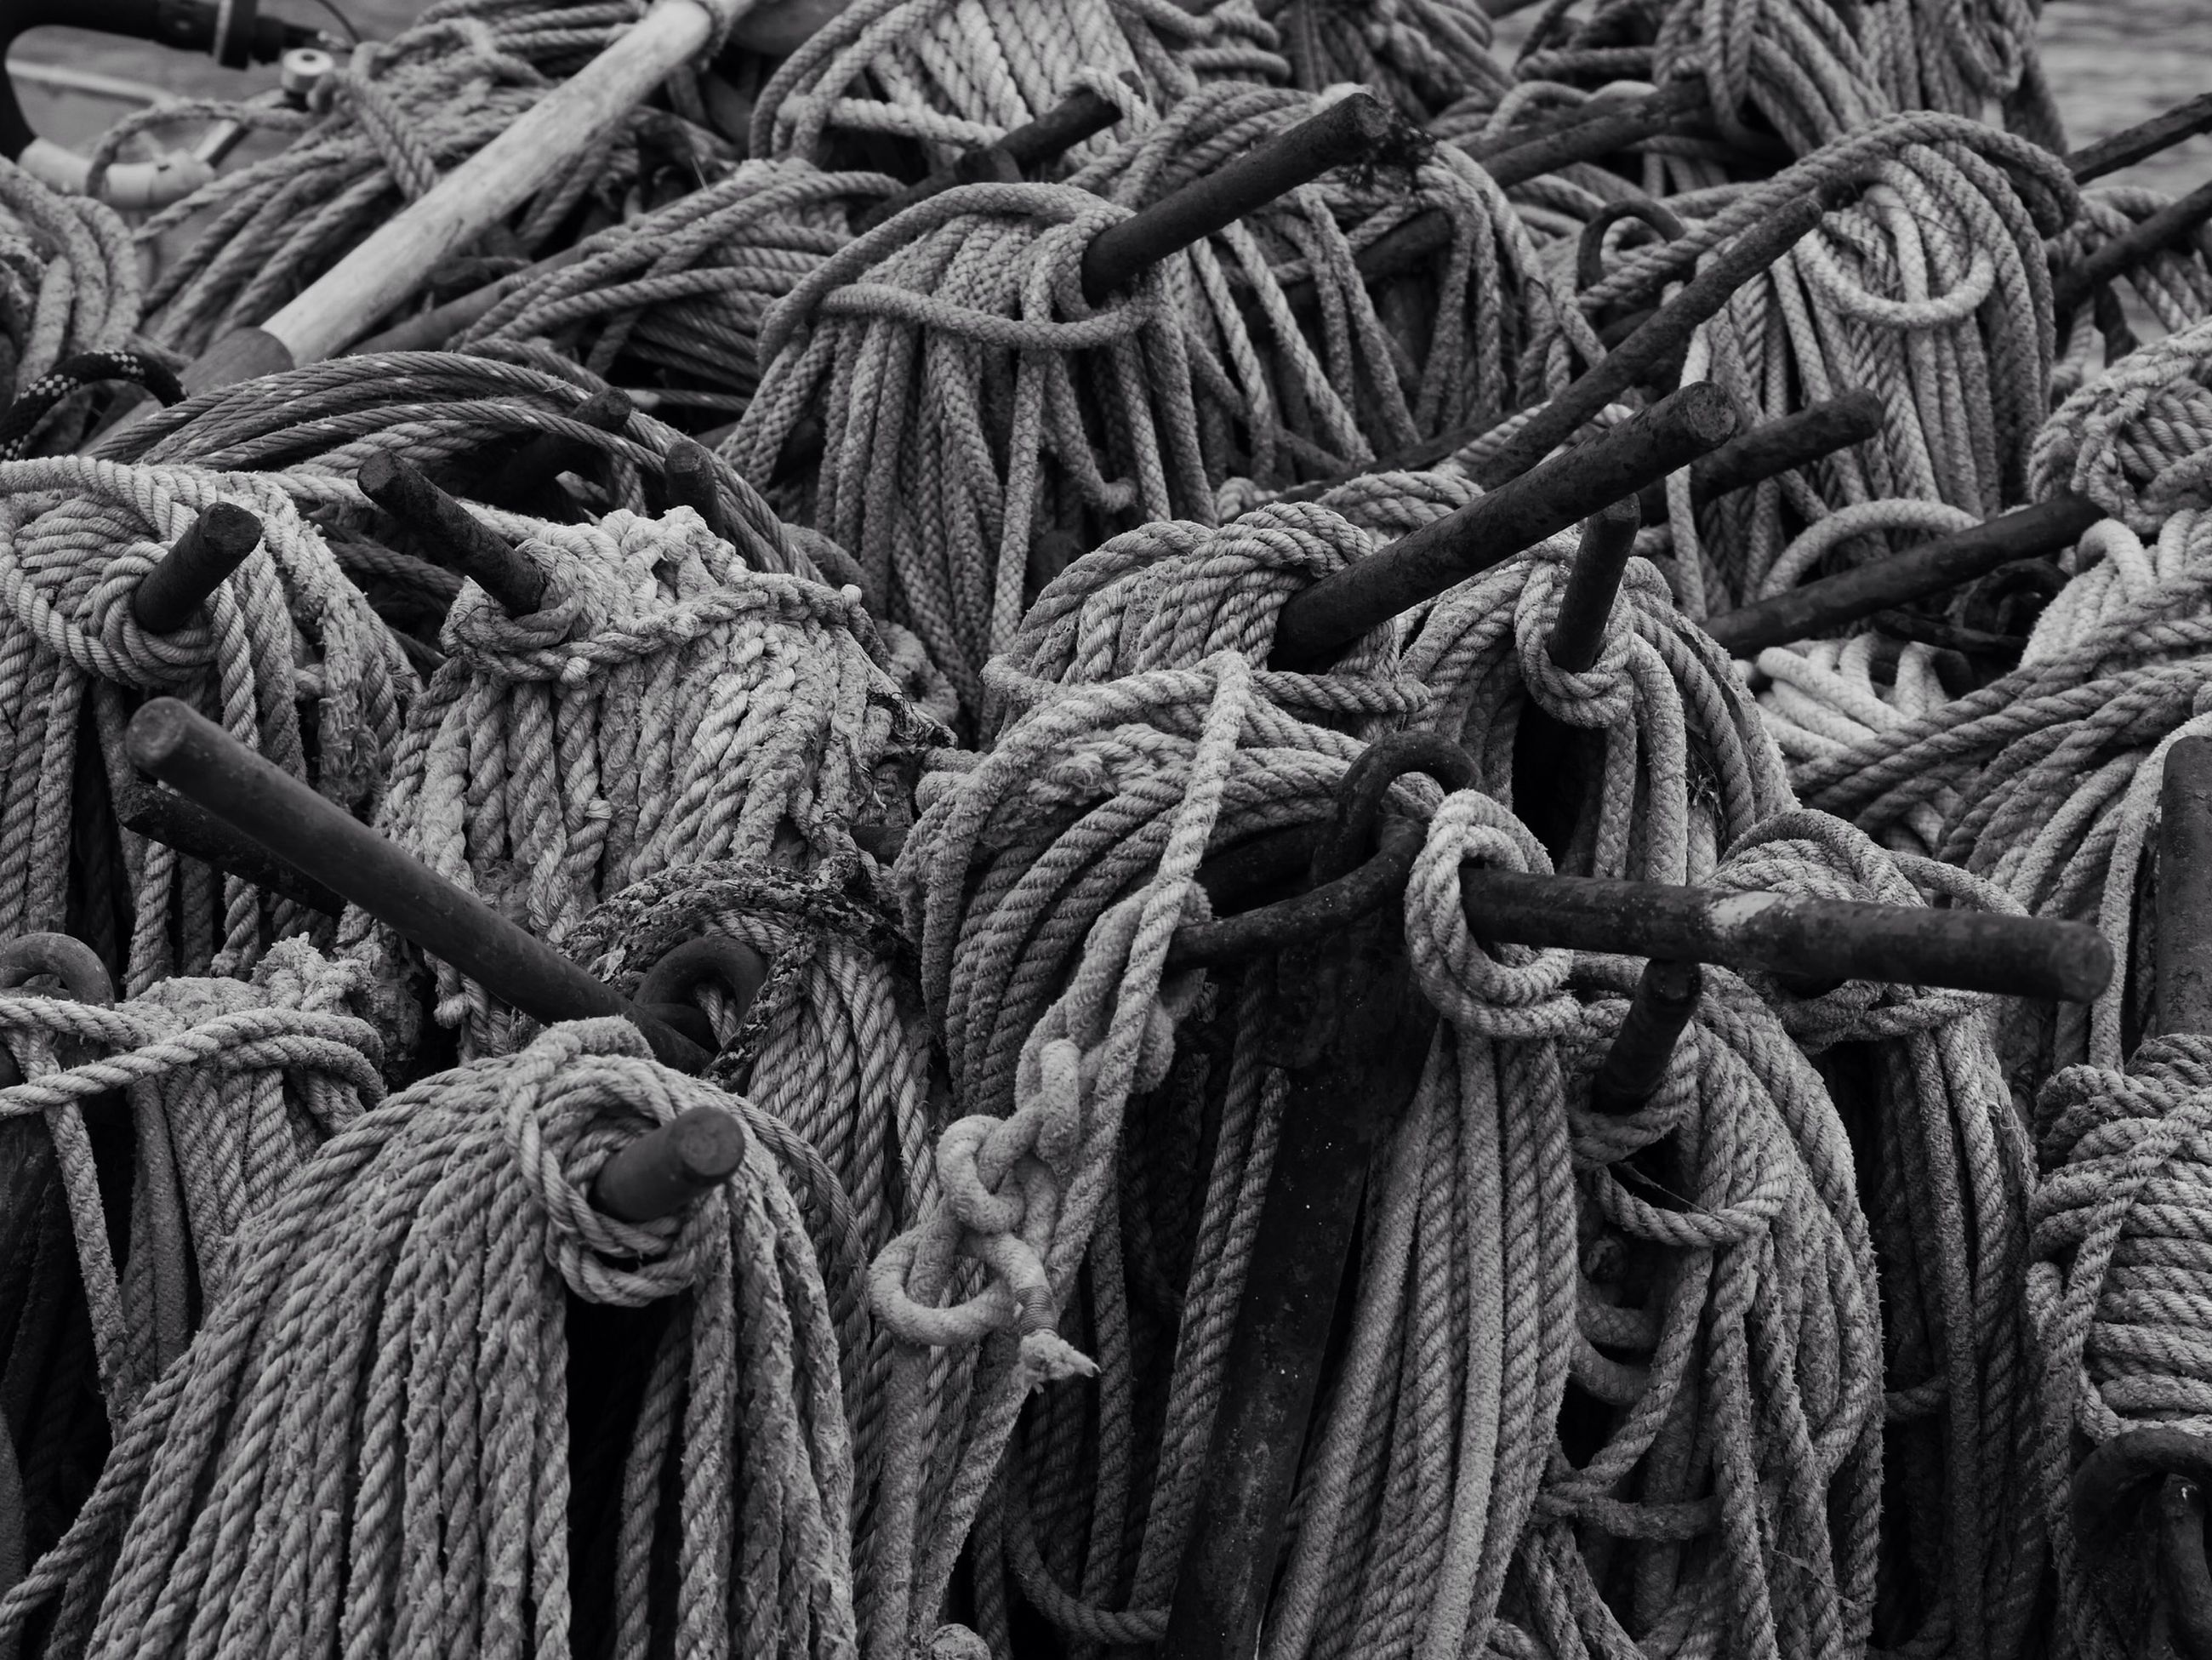 full frame, backgrounds, close-up, abundance, large group of objects, rope, metal, wood - material, textured, pattern, heap, stack, strength, rusty, detail, outdoors, no people, tied up, day, still life